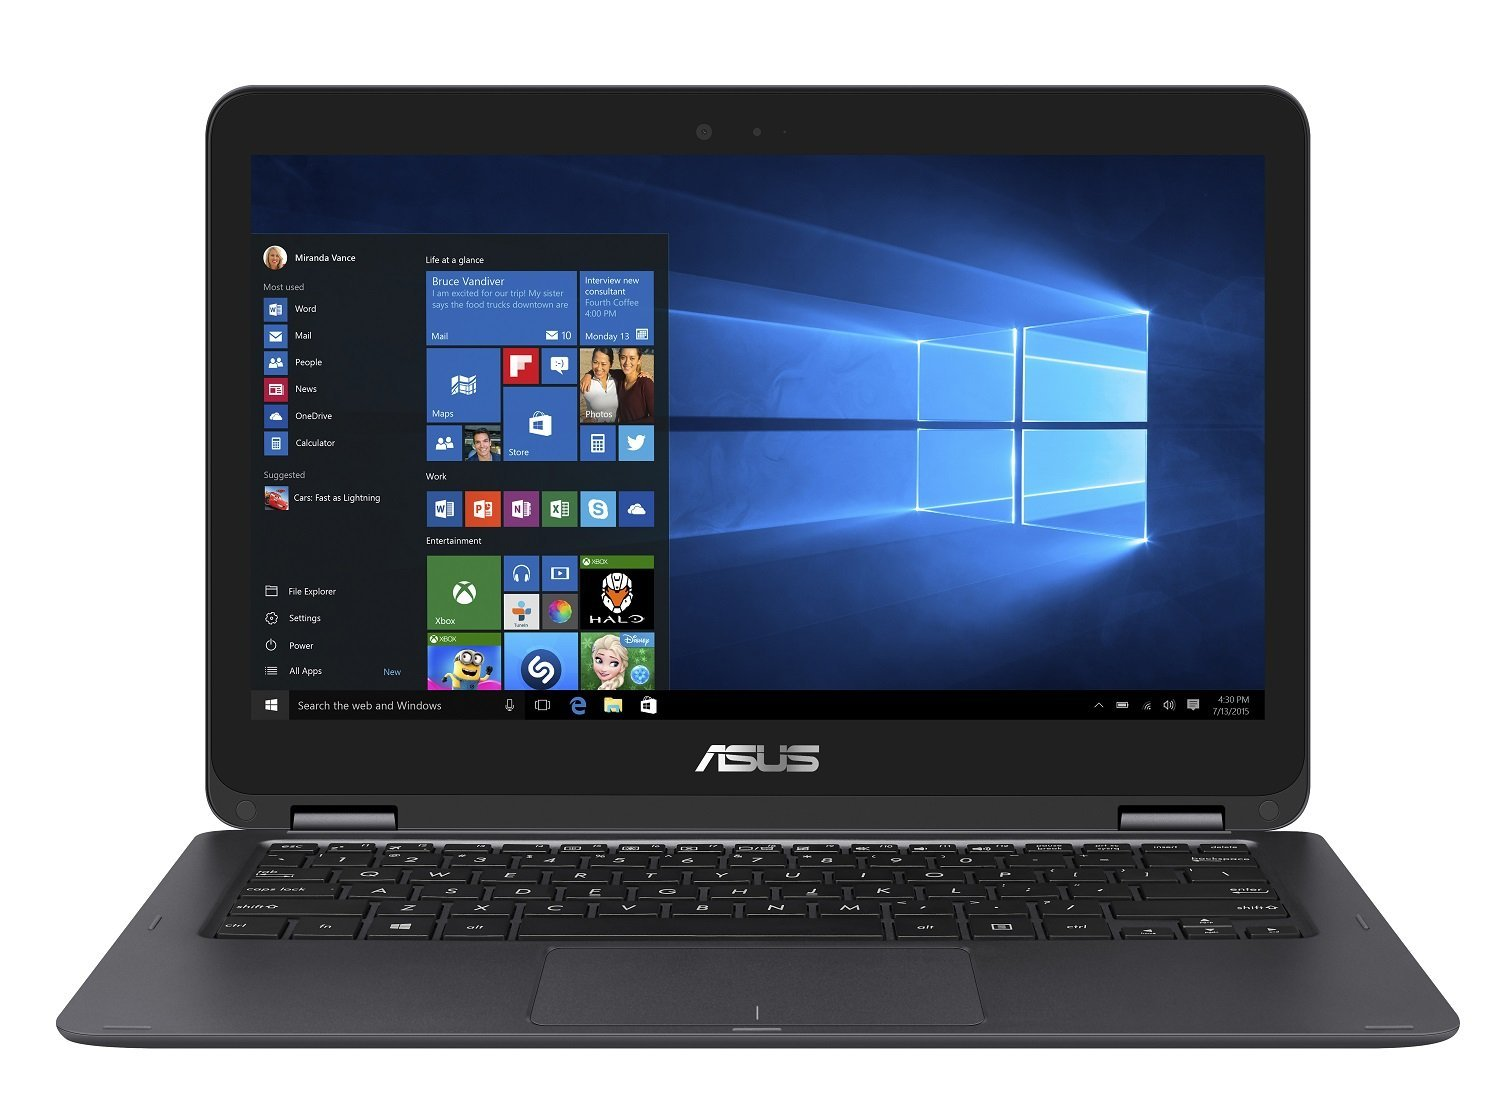 asus zenbook ux360ua c4136t ultrabook tactile pas cher amazon ventes pas. Black Bedroom Furniture Sets. Home Design Ideas